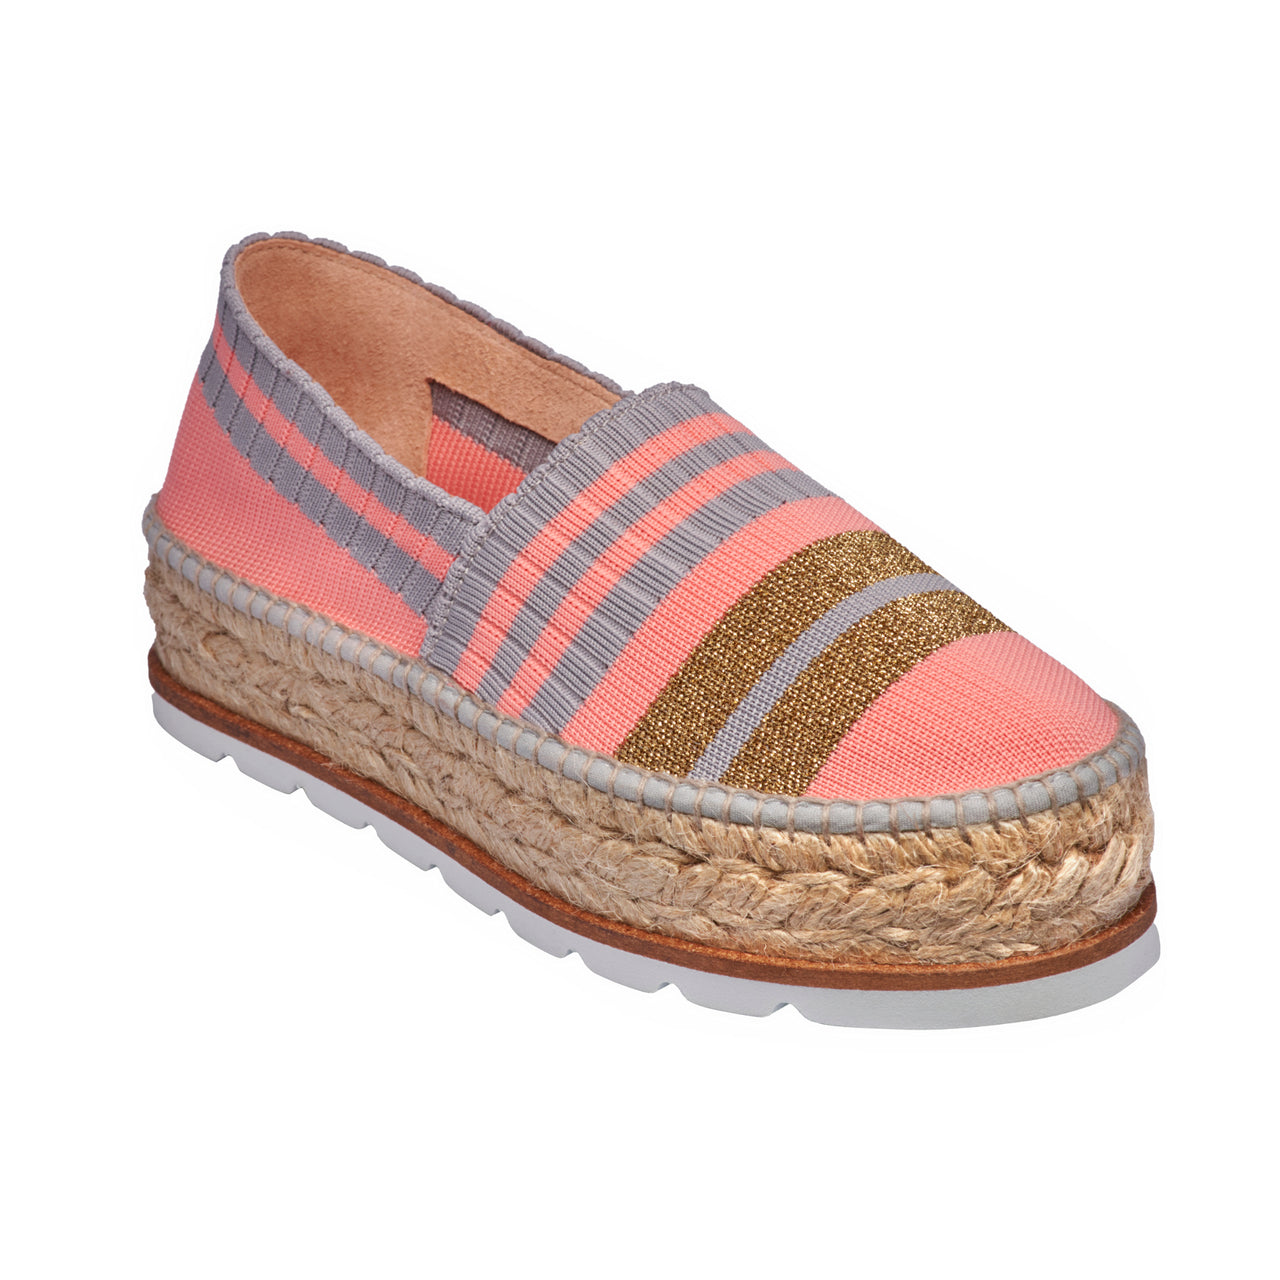 JASMIN Pink/Gold espadrilles - Badt and Co - singapore